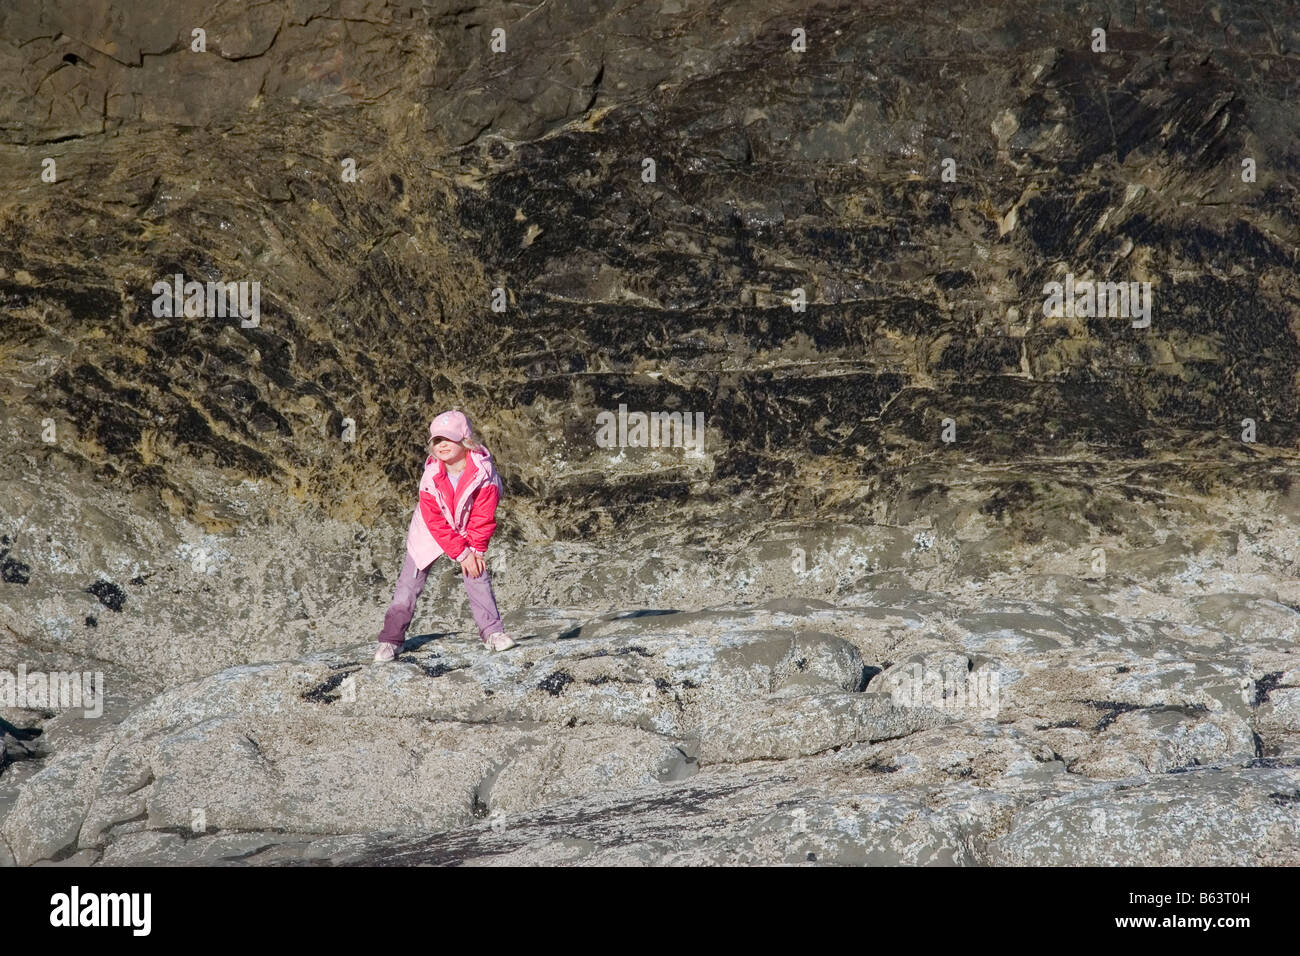 A young hiker at Hole in the Wall Rialto Beach Olympic National Park Washington - Stock Image